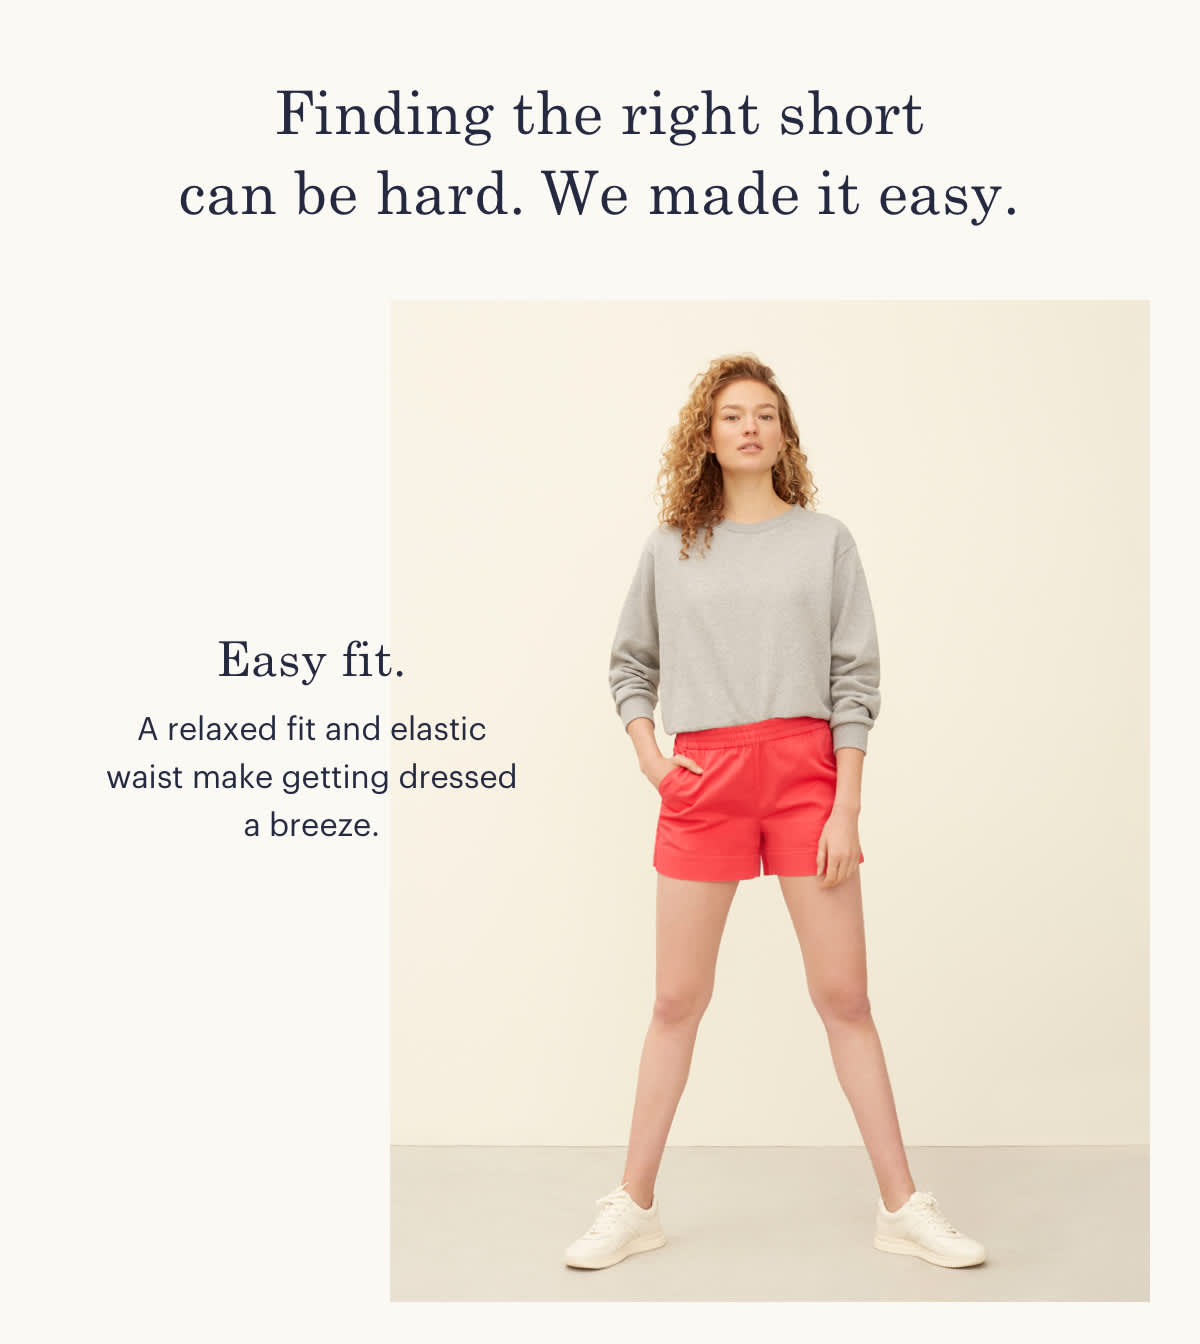 Easy fit. A relaxed fit and elastic waist make getting dressed a breeze.